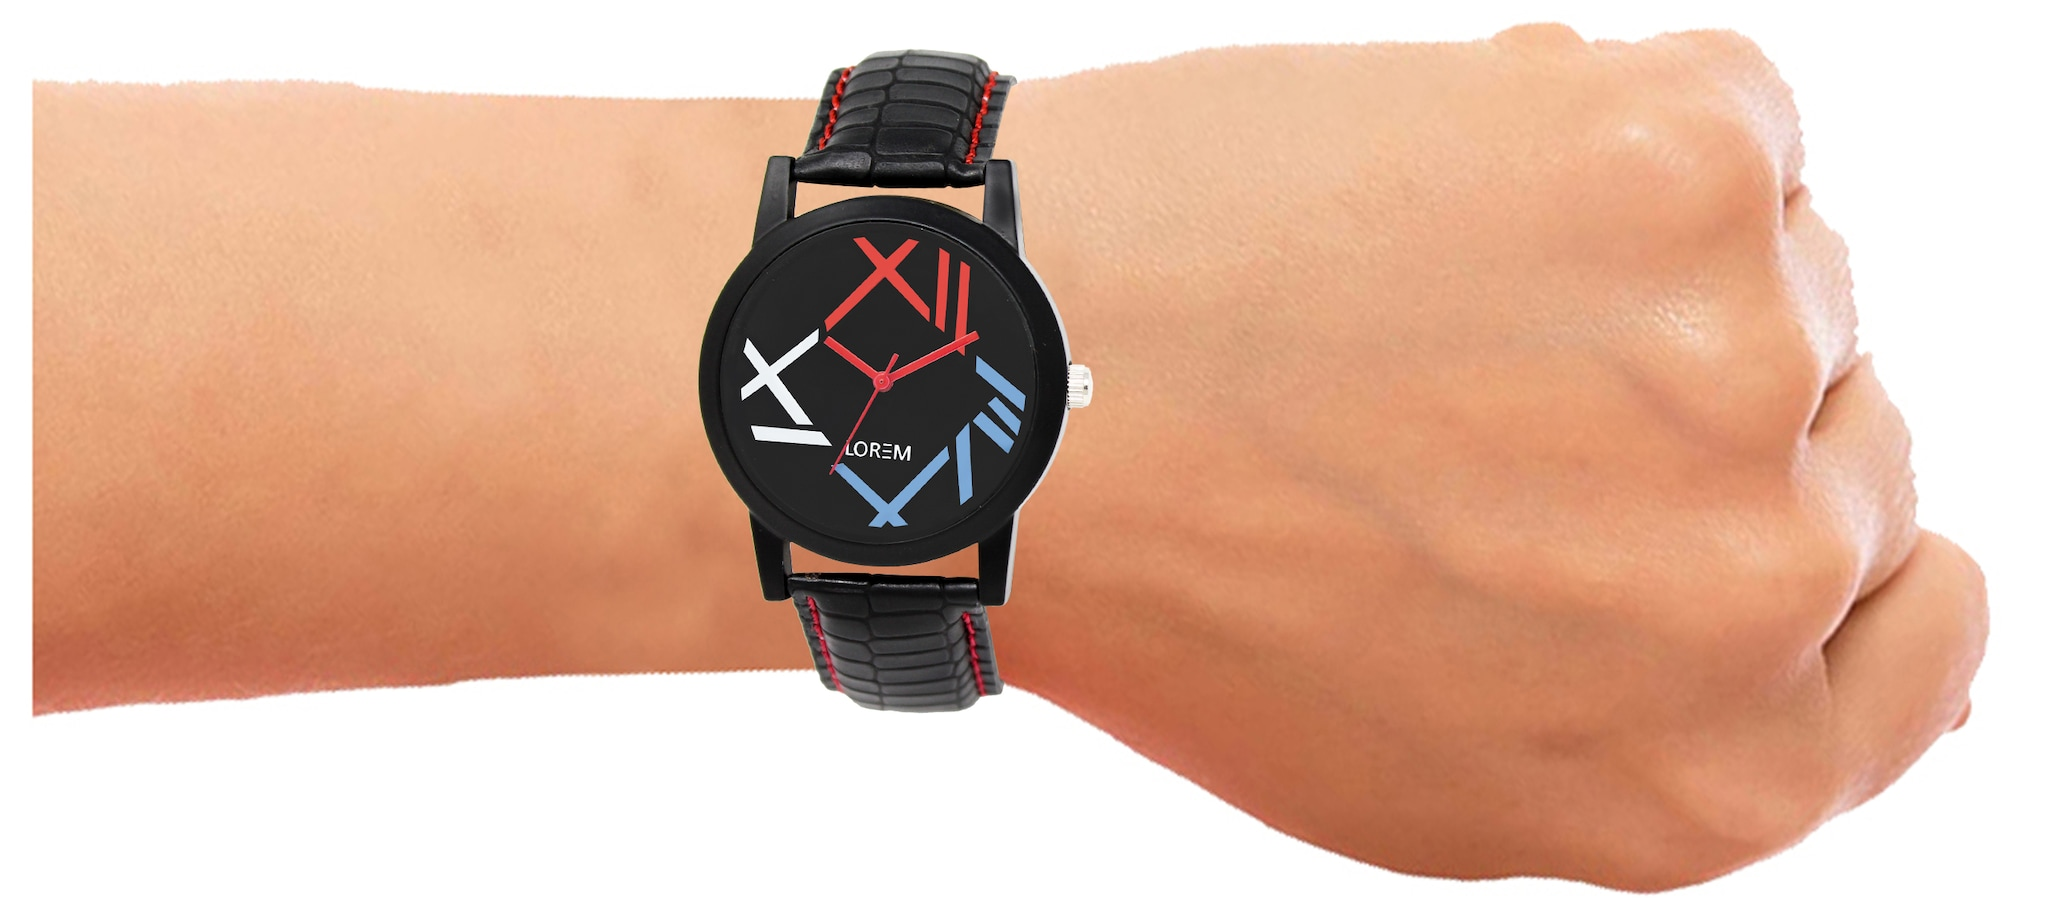 Analogue Multicolour Dial Watch For Men And Boys